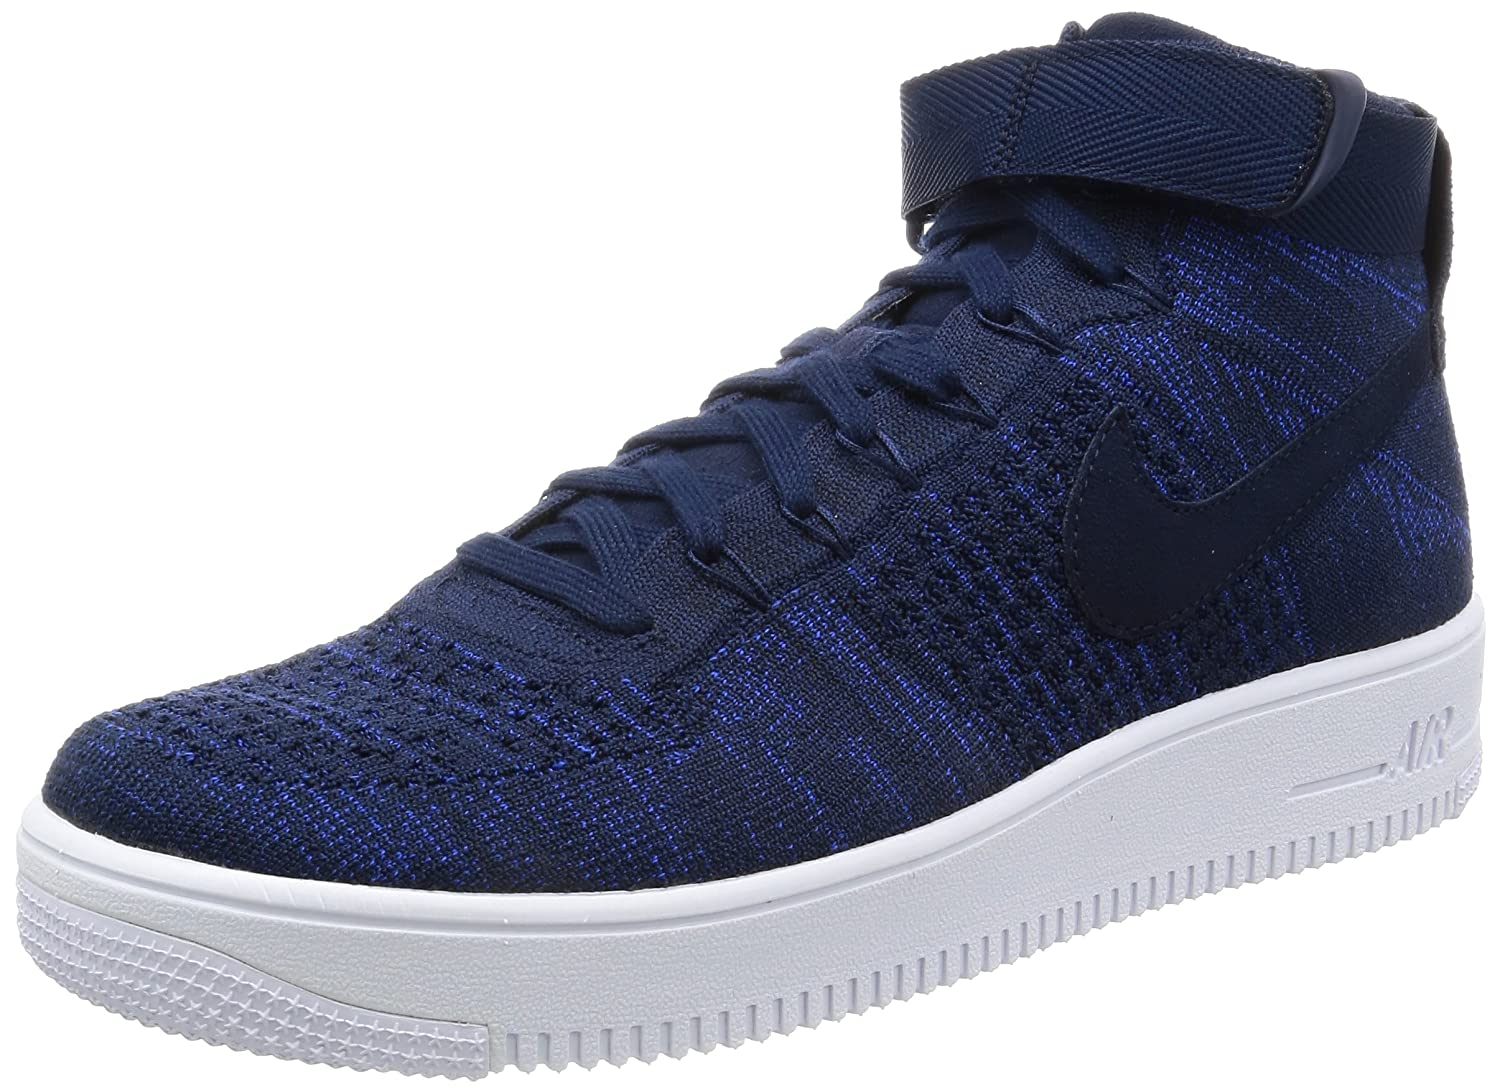 Nike Air Force 1 Ultra Flyknit Sneaker Turnschuhe Schuhe fuuml;r Herren  47.5 EU|Dunkelblau (College Navy/Black/White)